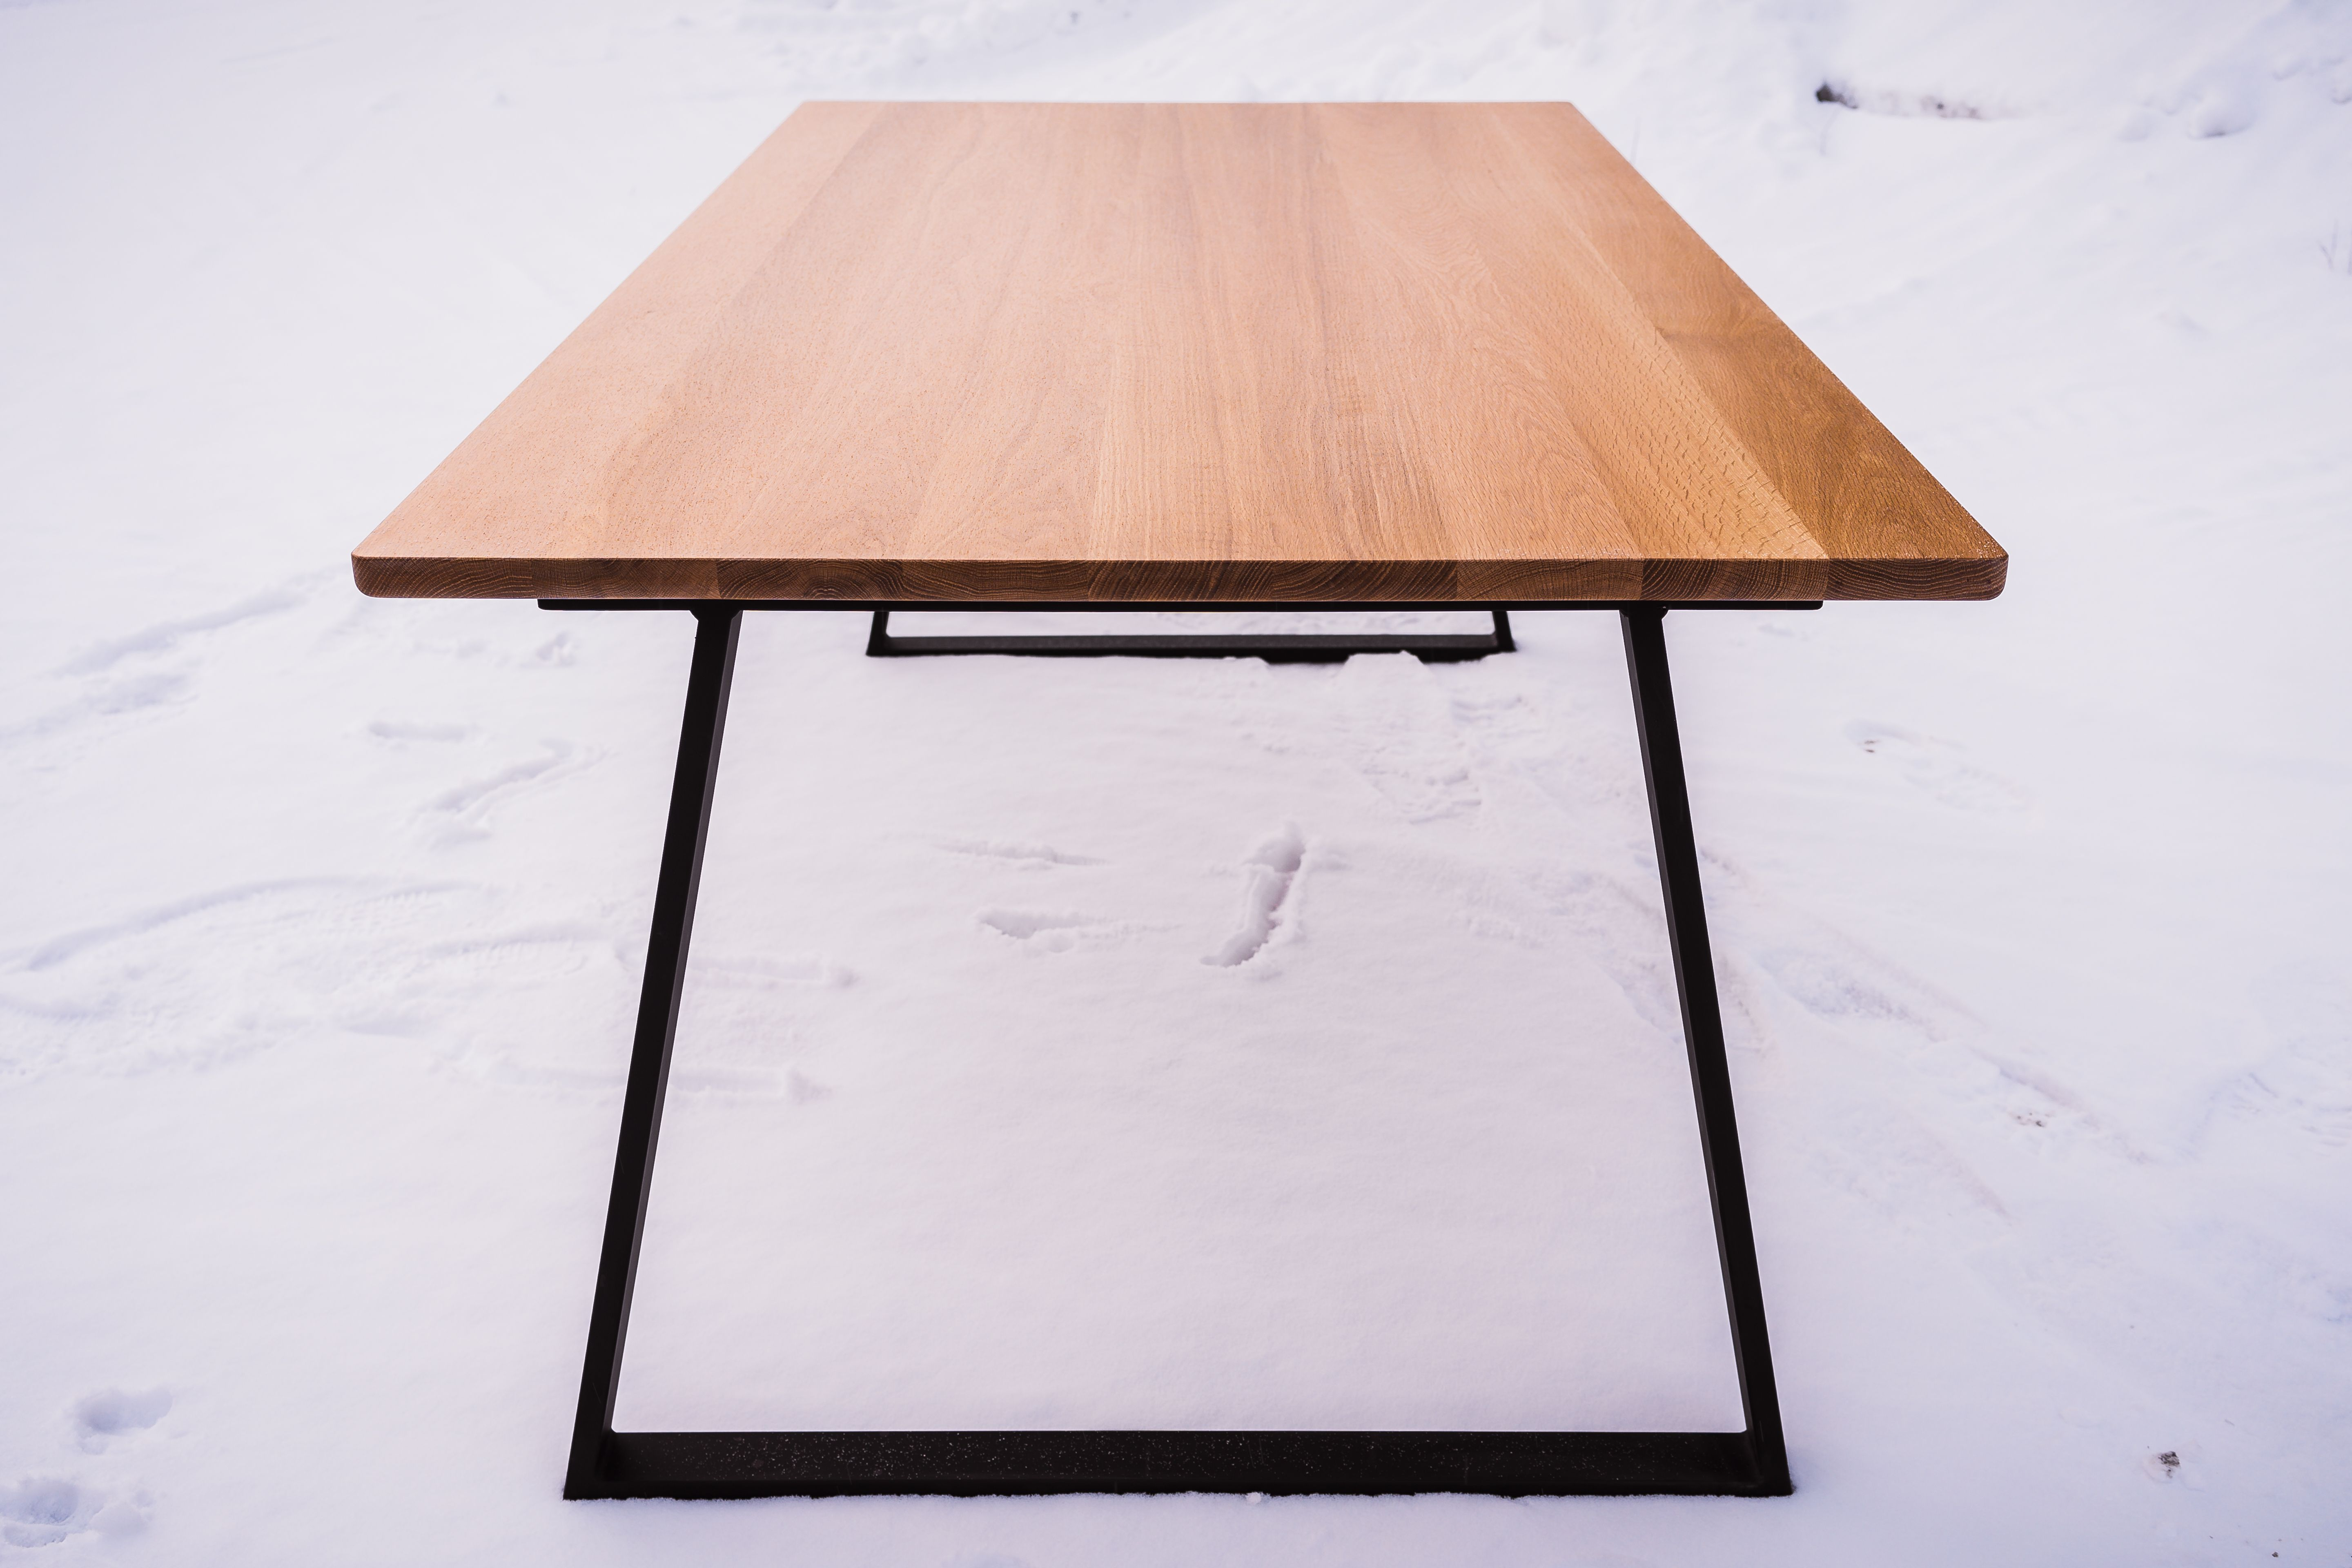 Dining Table From White Oak Furniture Design Interior Design Dining Table